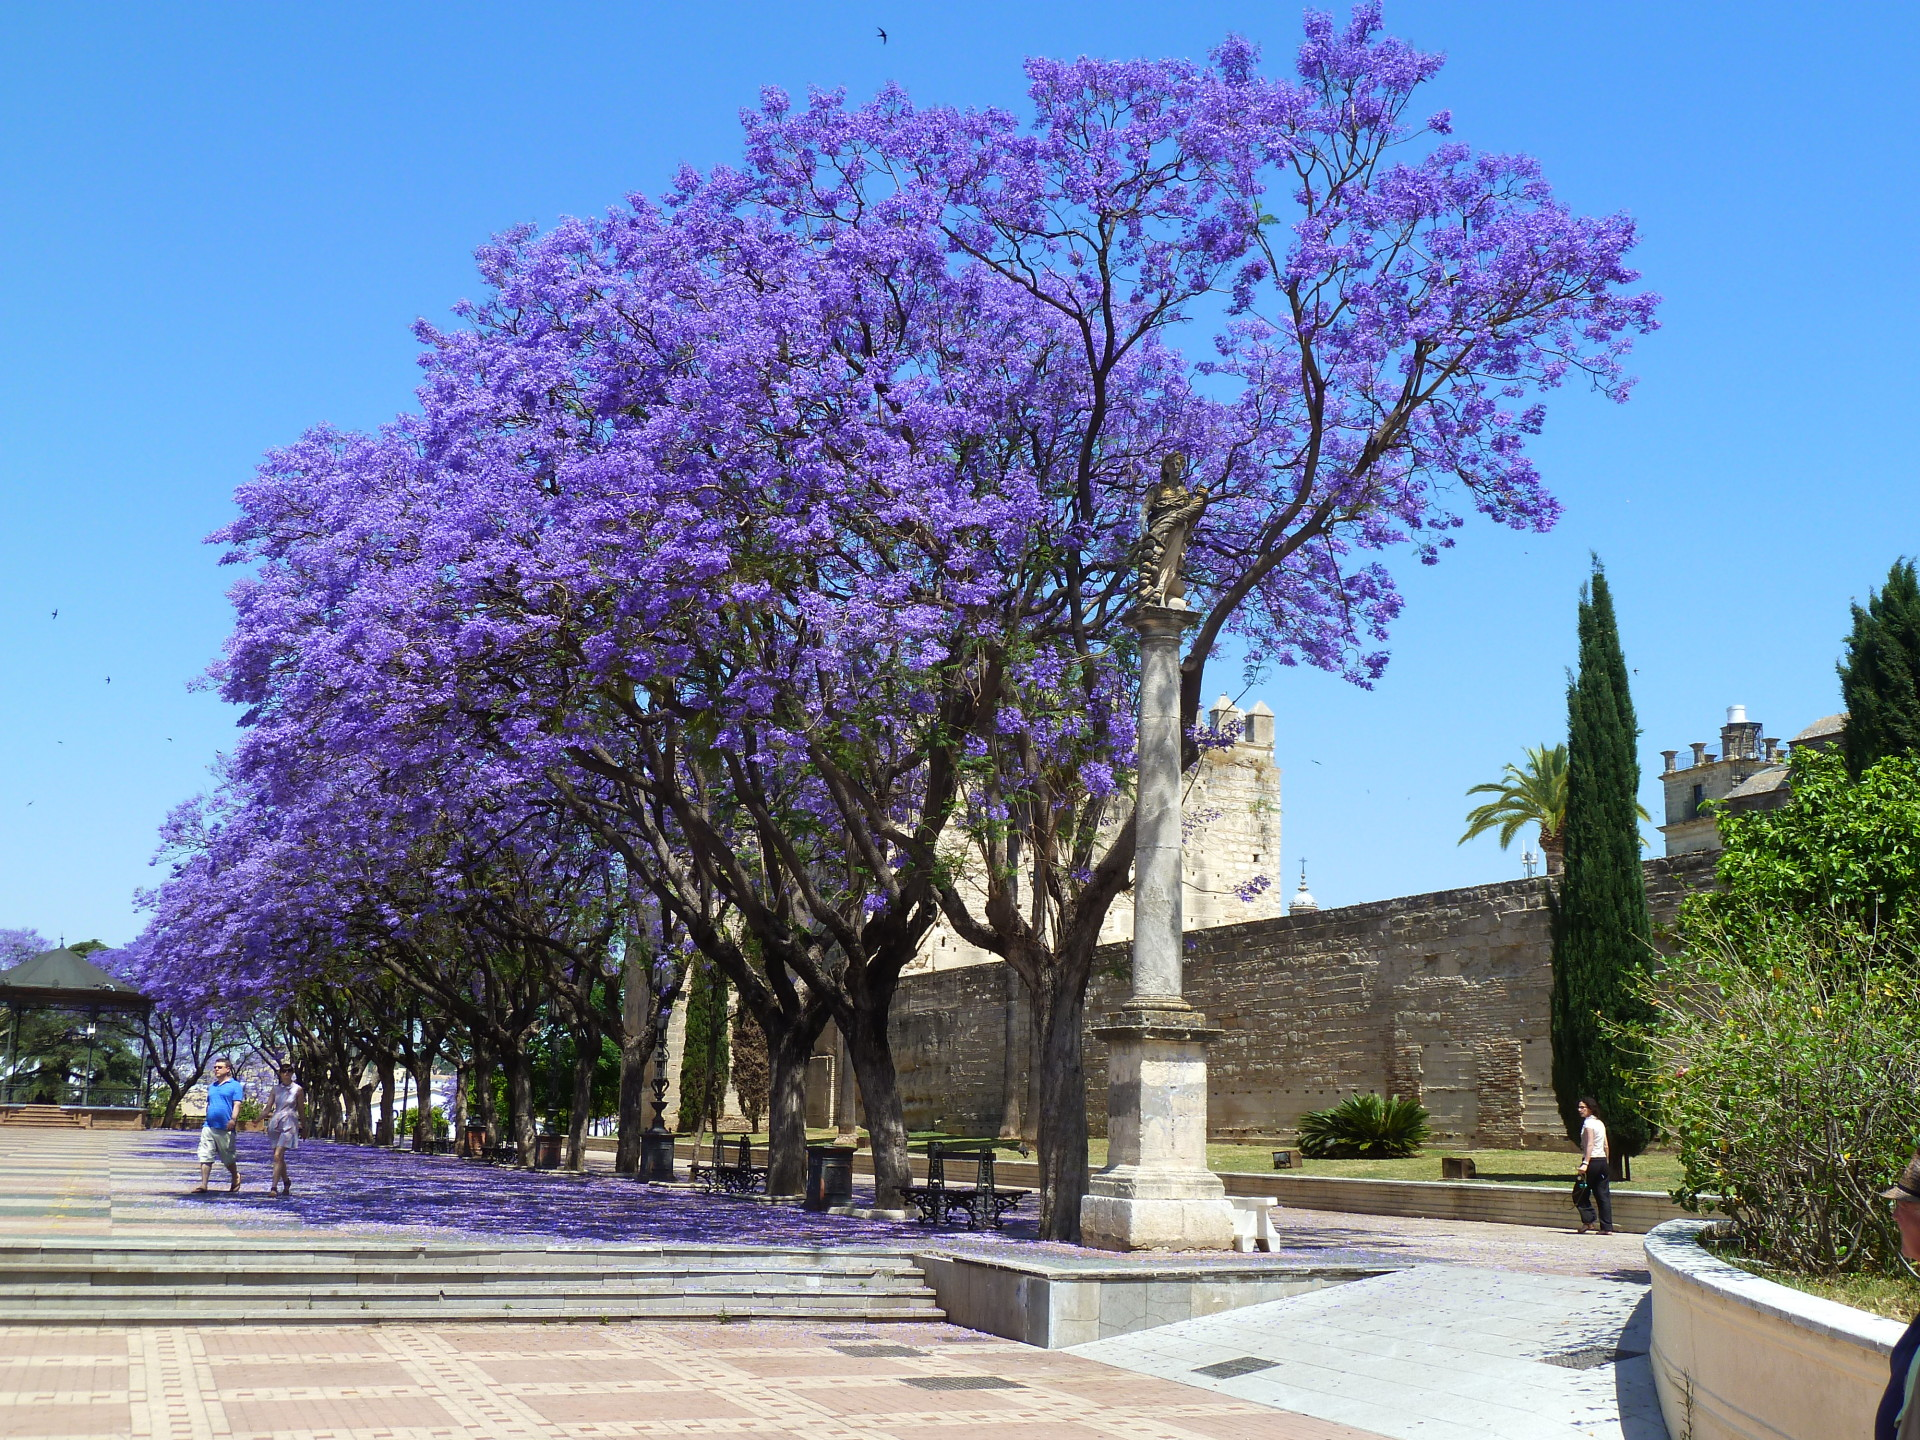 Jacaranda trees next to the Alcazar, Jerez